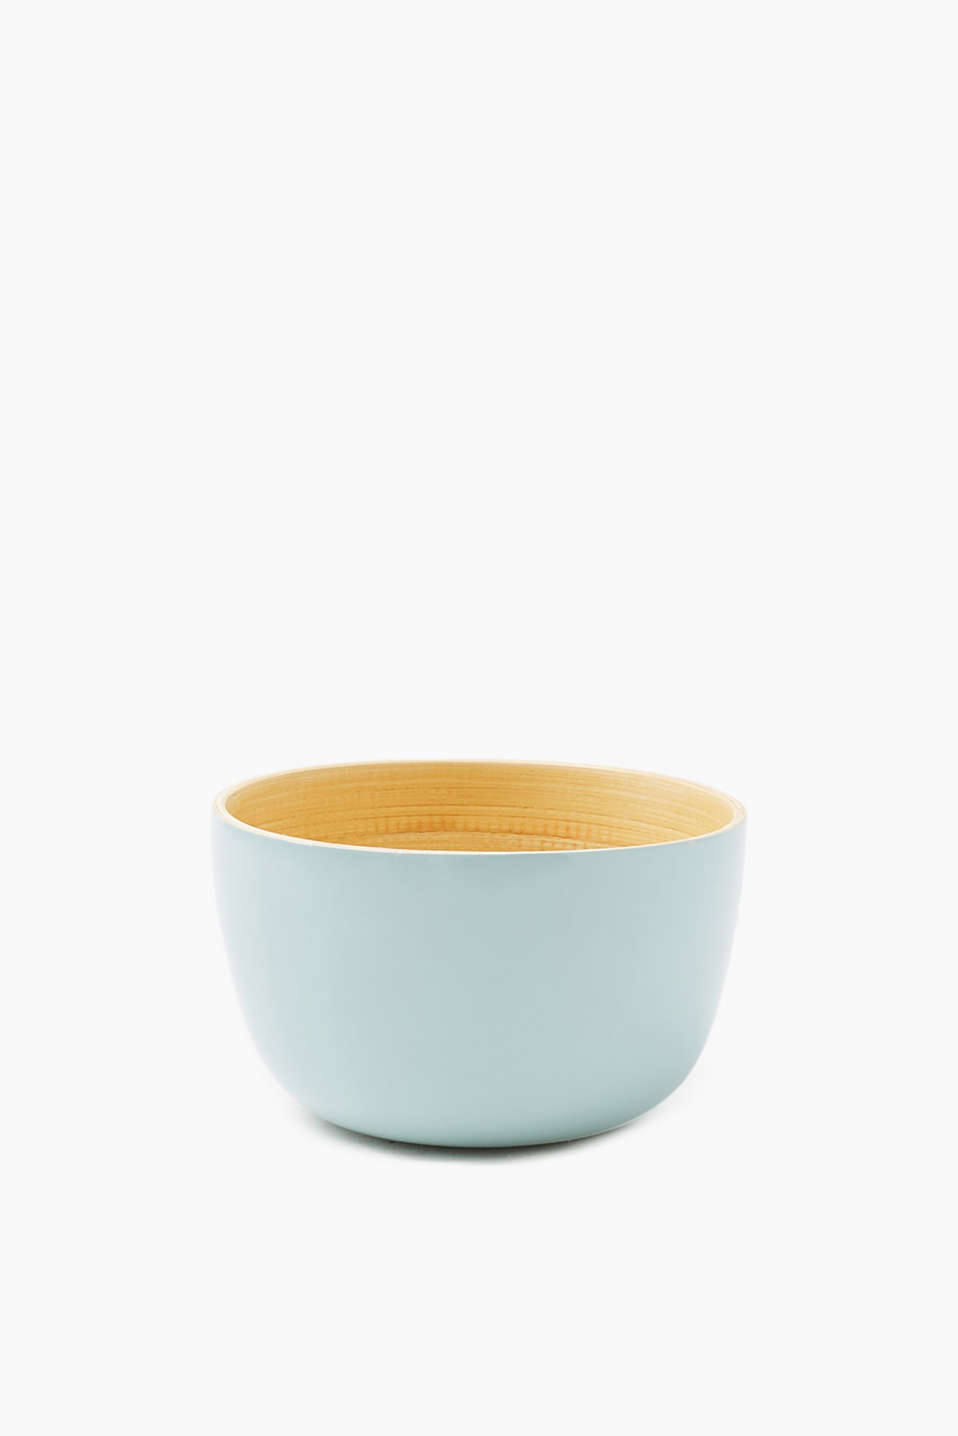 Decorative wooden bowl coated in a pastel tone, Clover